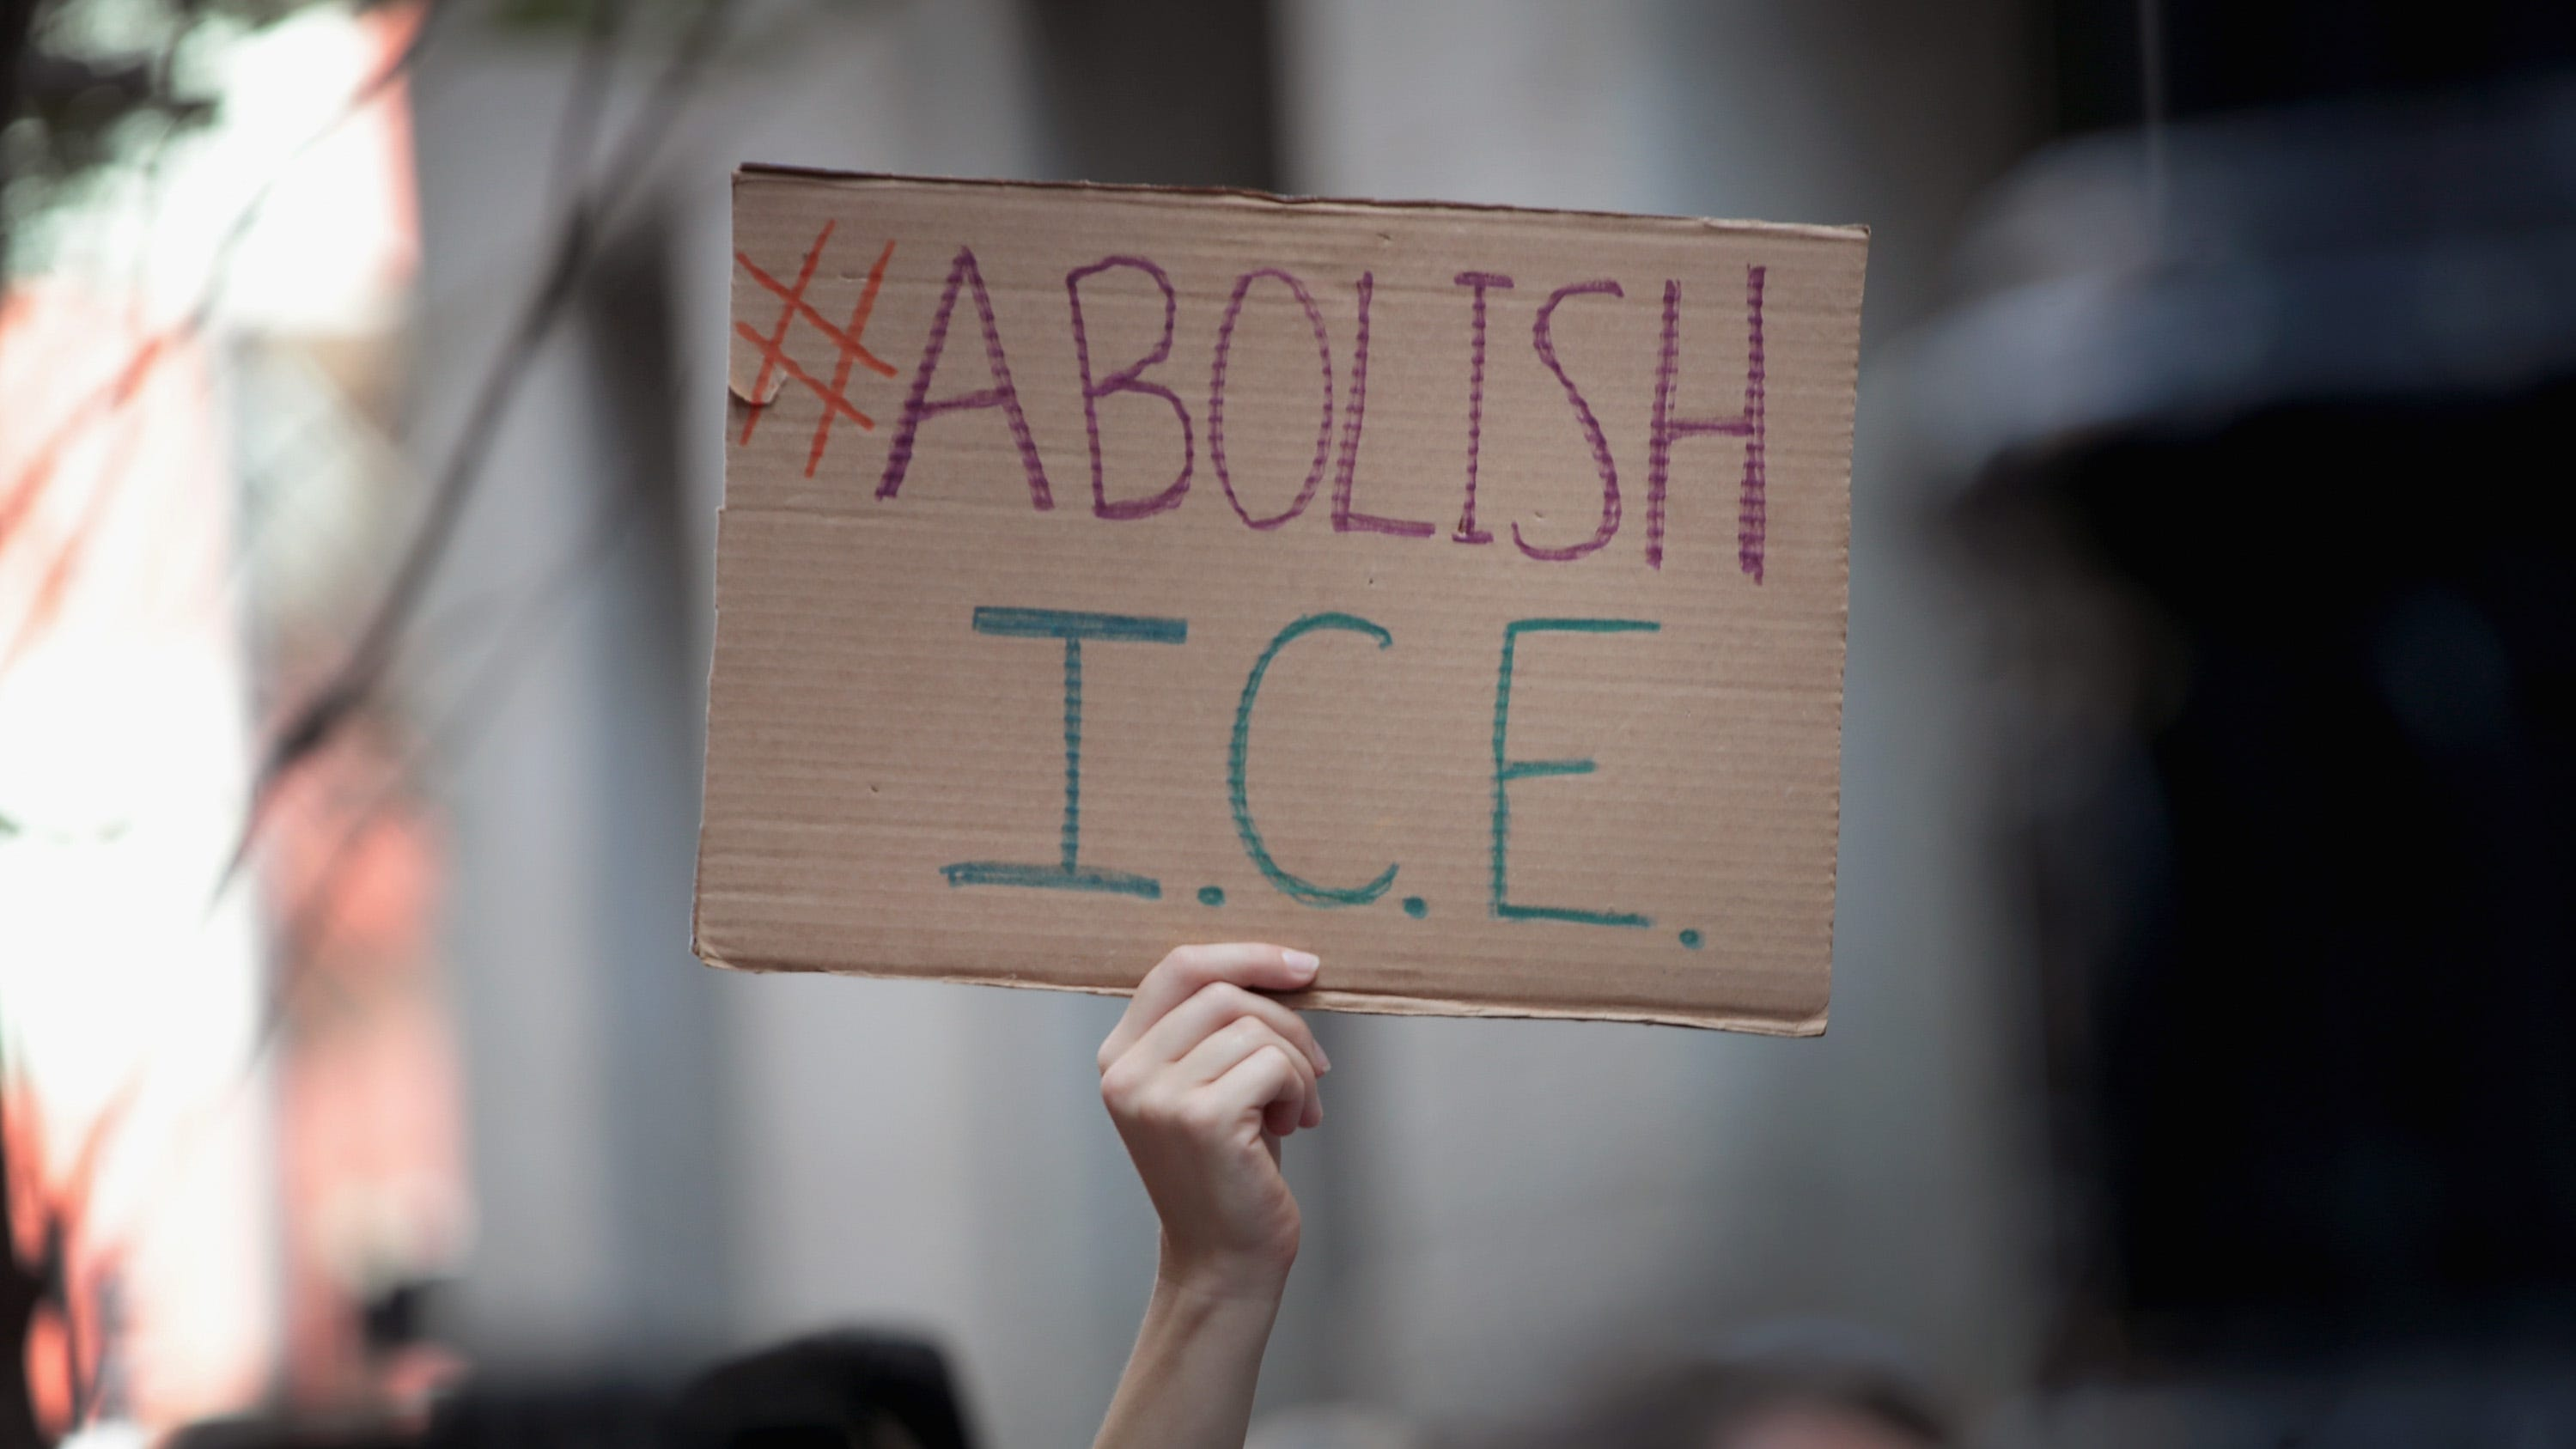 Demonstrators march through downtown Chicago calling for the abolition of the U.S. Immigration and Customs Enforcement (ICE) on August 16, 2018.